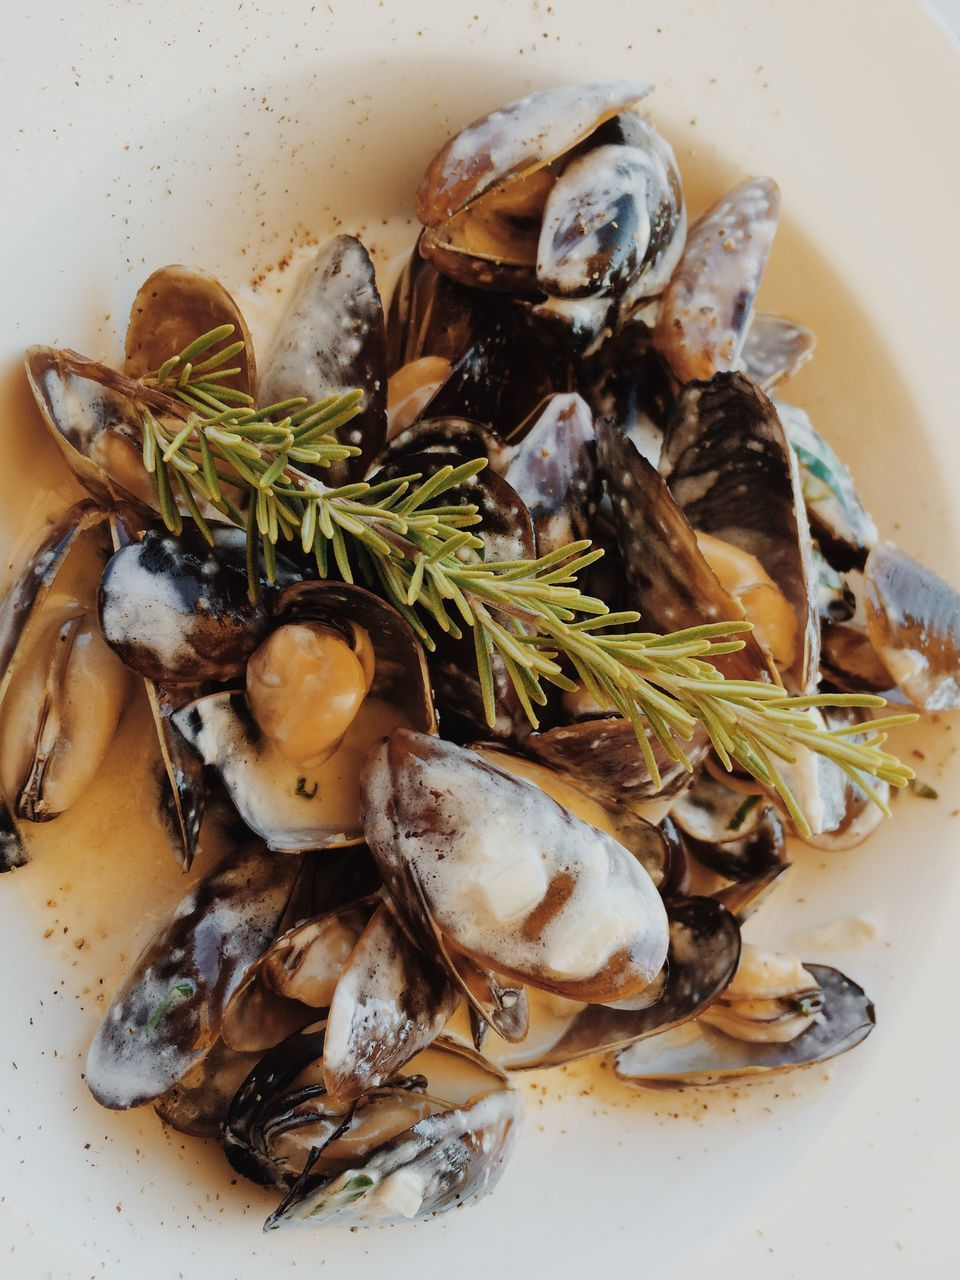 food and drink, seafood, food, freshness, indoors, wellbeing, healthy eating, plate, close-up, ready-to-eat, no people, still life, high angle view, serving size, herb, mussel, animal, shell, meal, crustacean, temptation